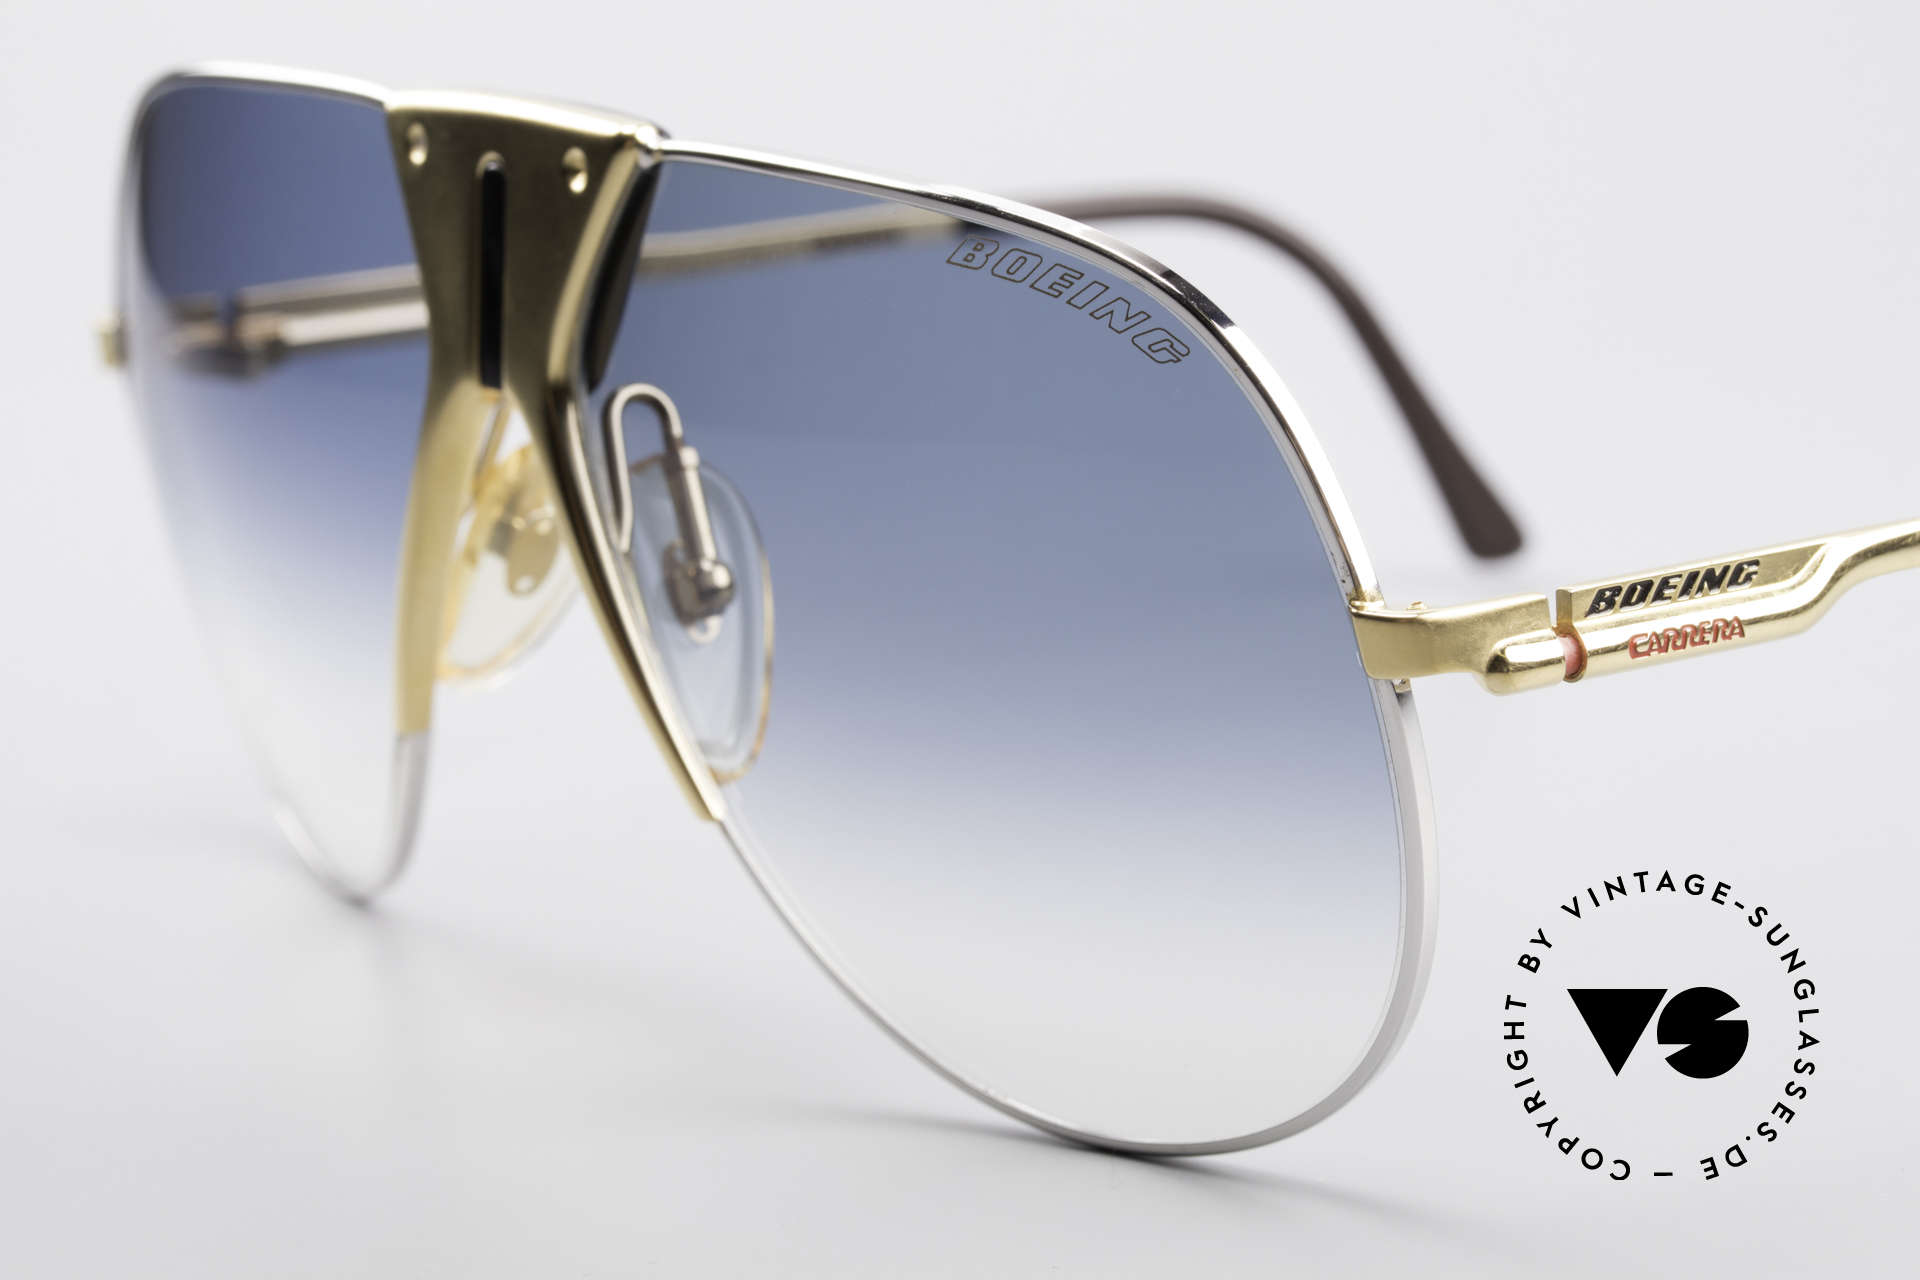 Boeing 5701 Famous 80's Pilots Sunglasses, hybrid between functionality, quality and lifestyle, Made for Men and Women